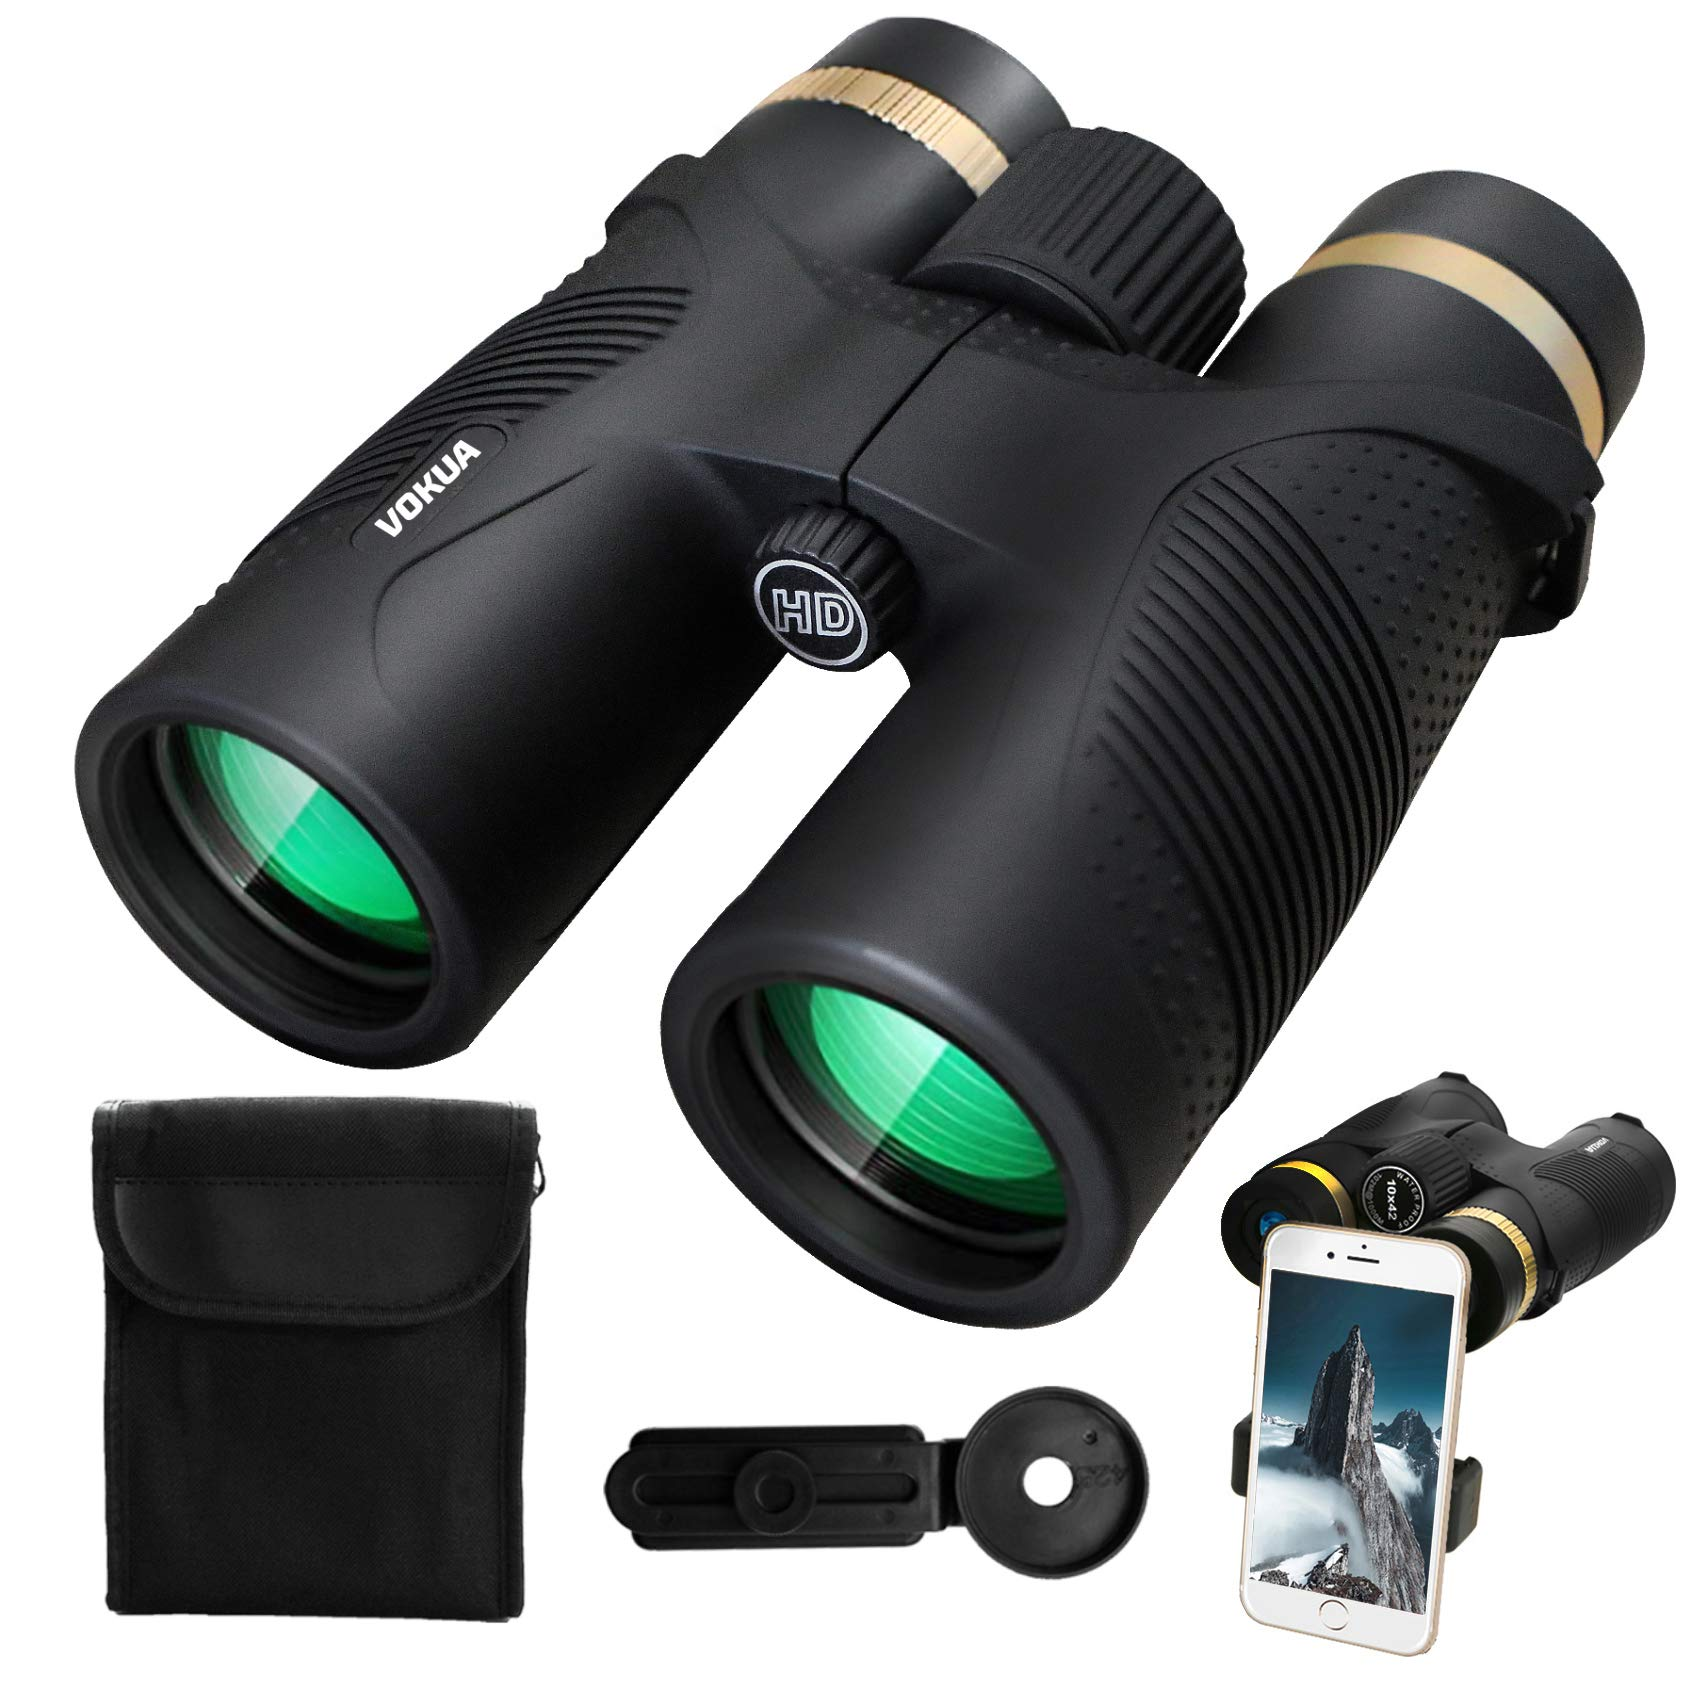 10X42 Binoculars for Adults, VOKUA Compact Binoculars for Bird Watching, Traveling and Hunting, BAK4 HD Prism & FMC Multi-Coated Objective Lenses Binoculars with Low Light Night Vision, Waterproof